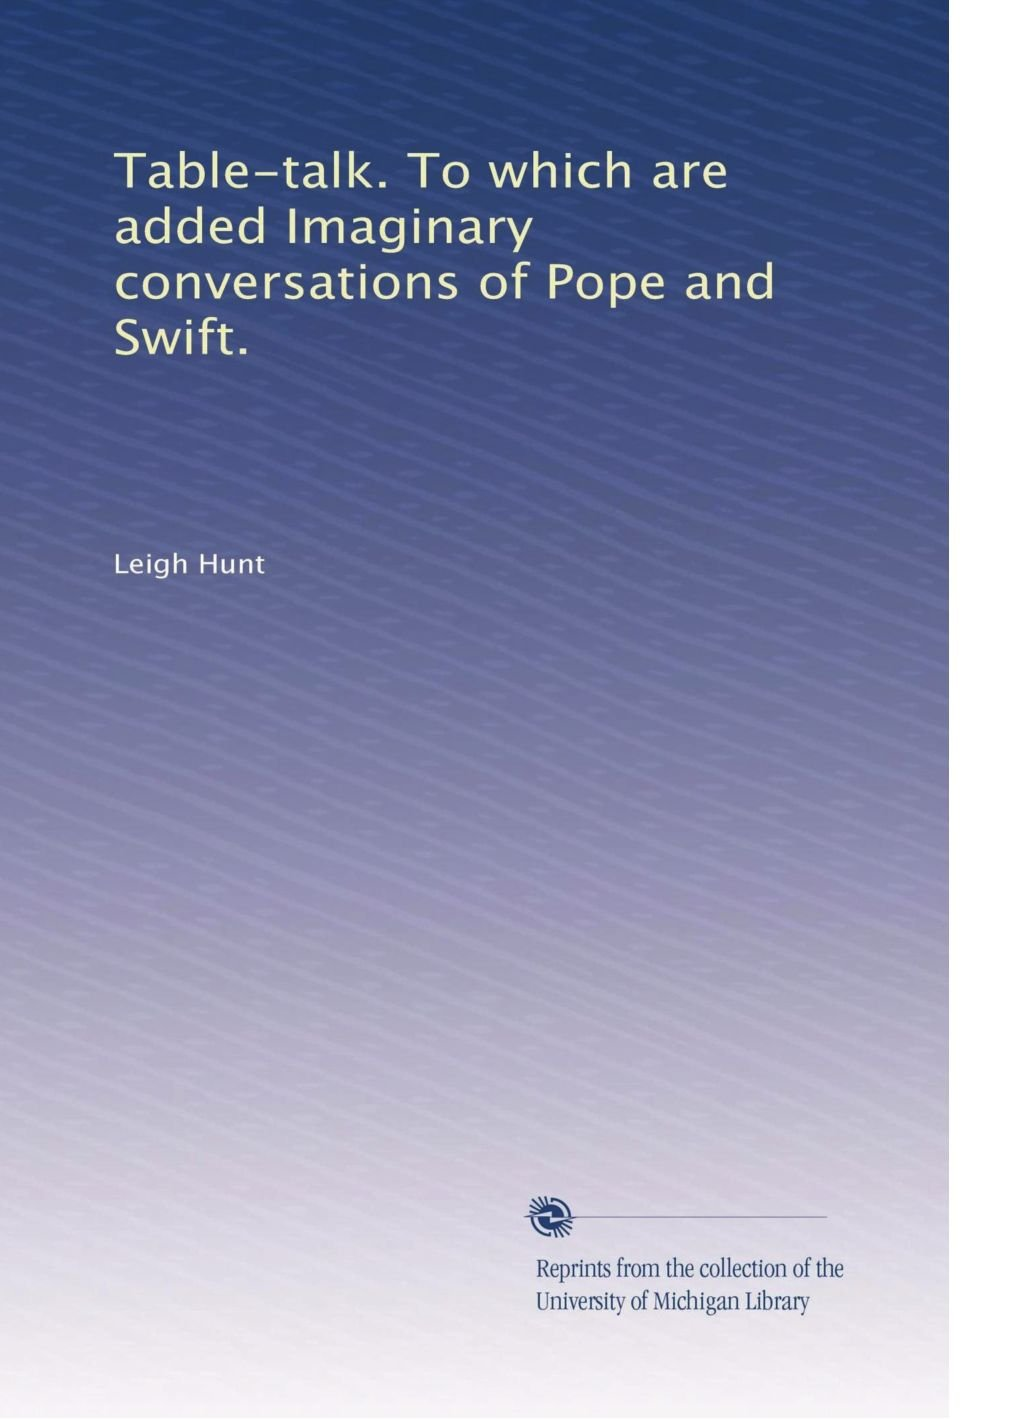 Table-talk. To which are added Imaginary conversations of Pope and Swift. PDF